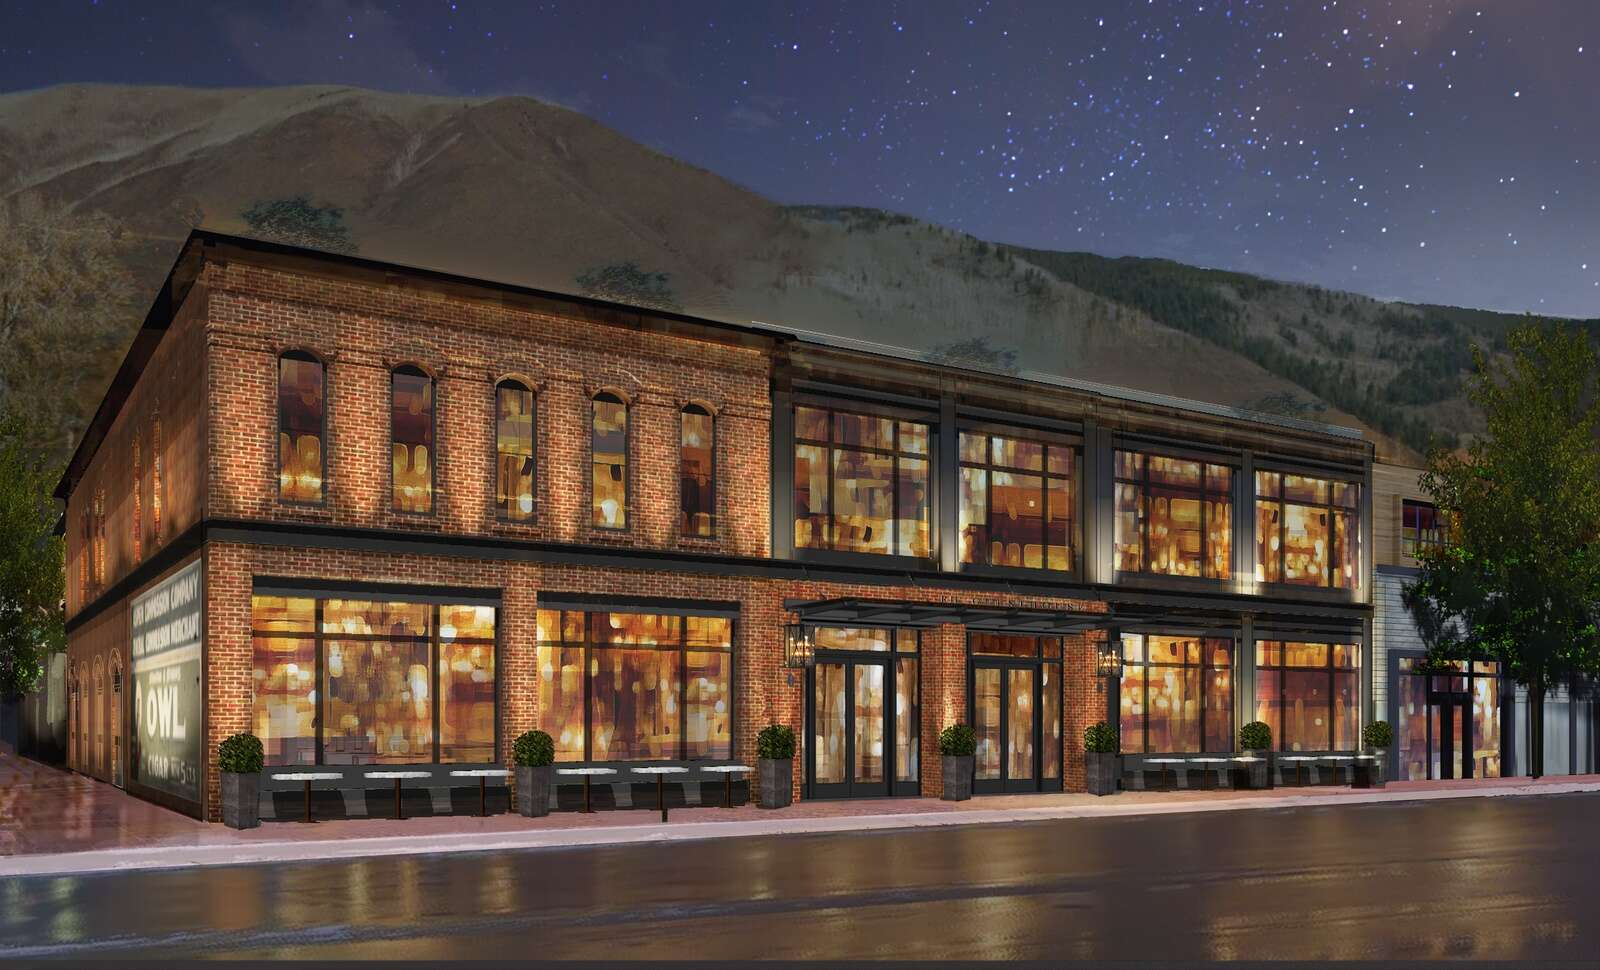 An architect's rendering of what a new boutique hotel in the former Crystal Palace will look like.